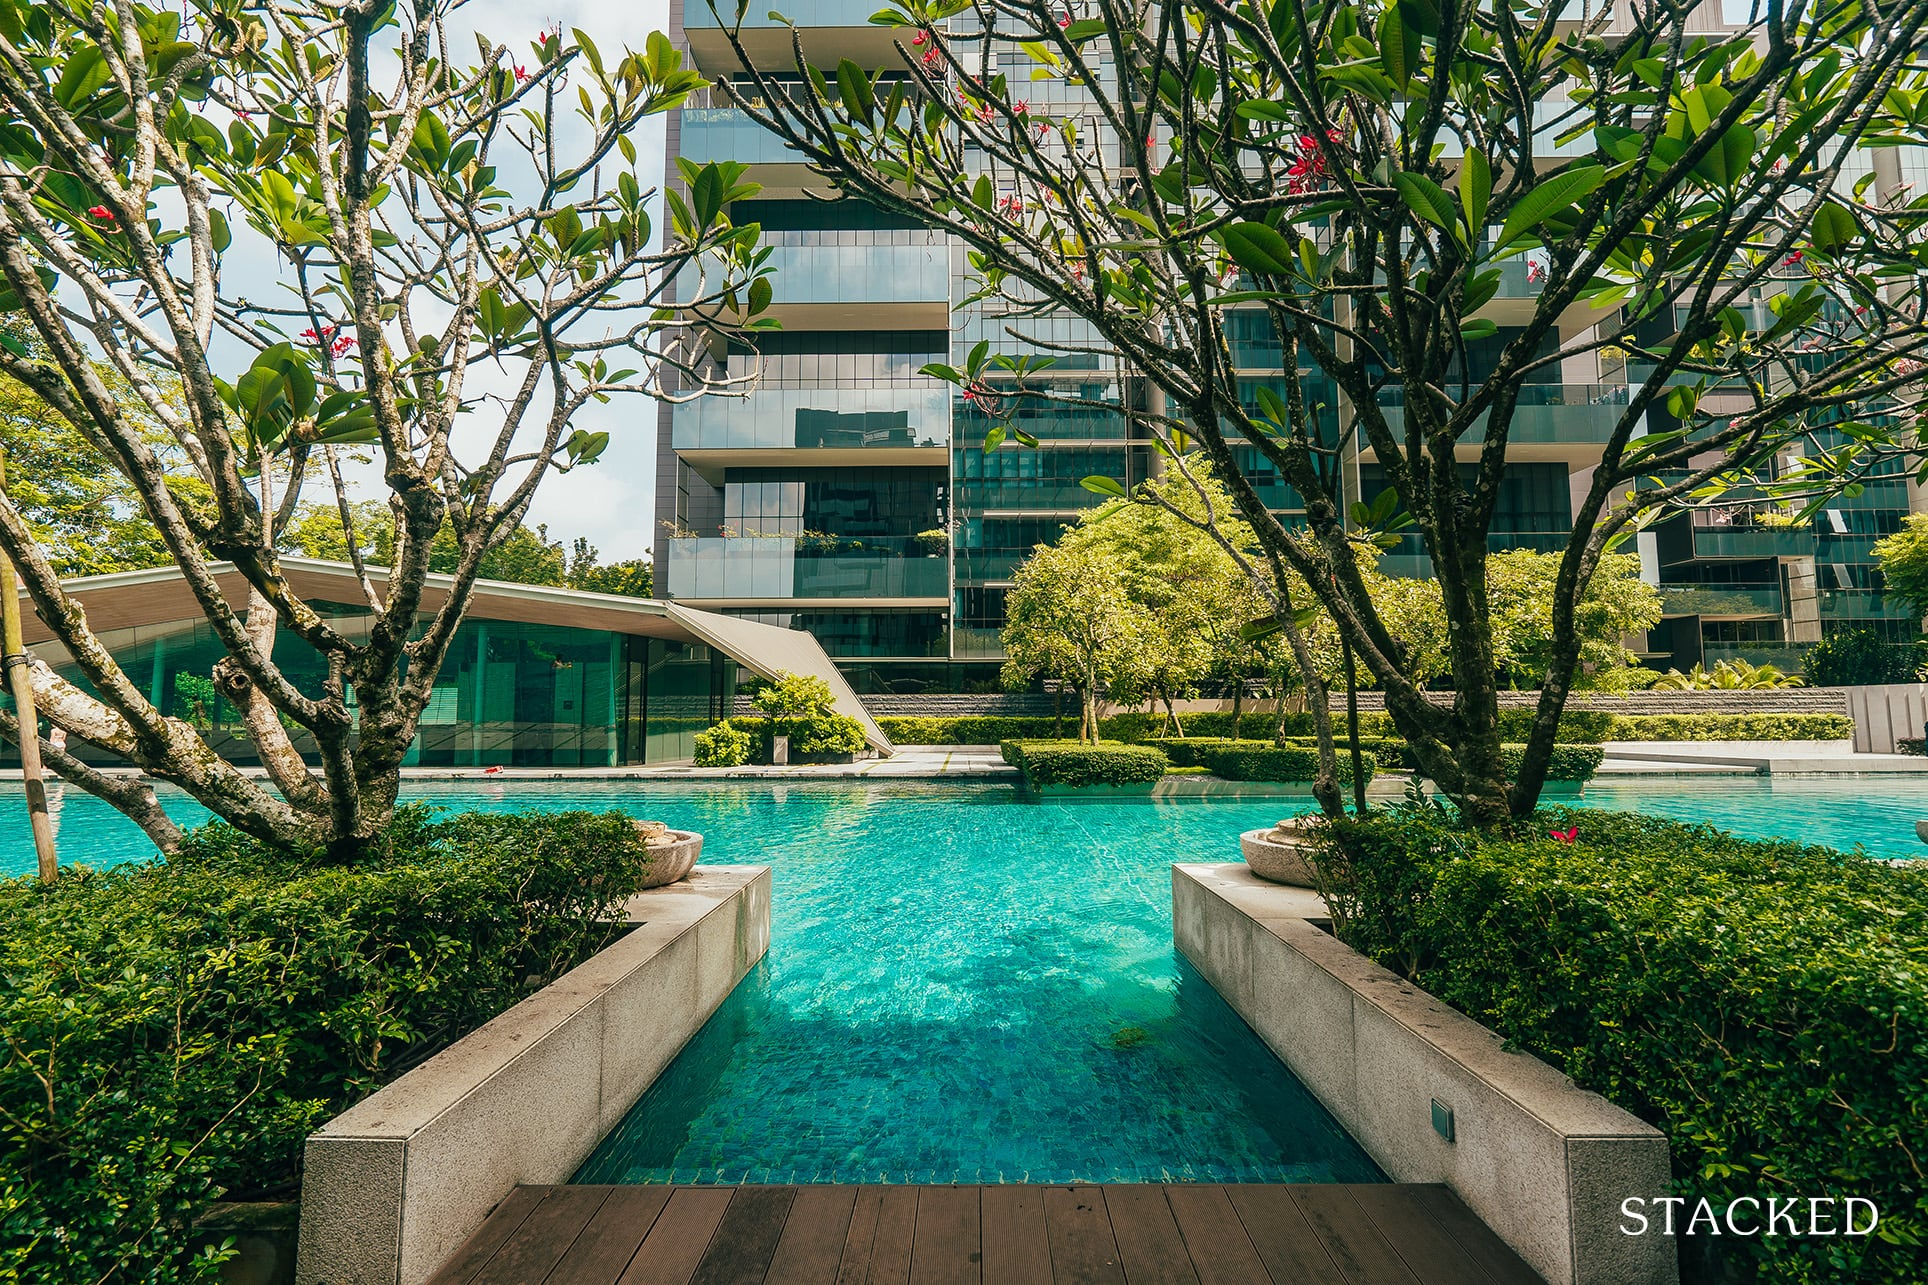 Leedon residence pool entrance